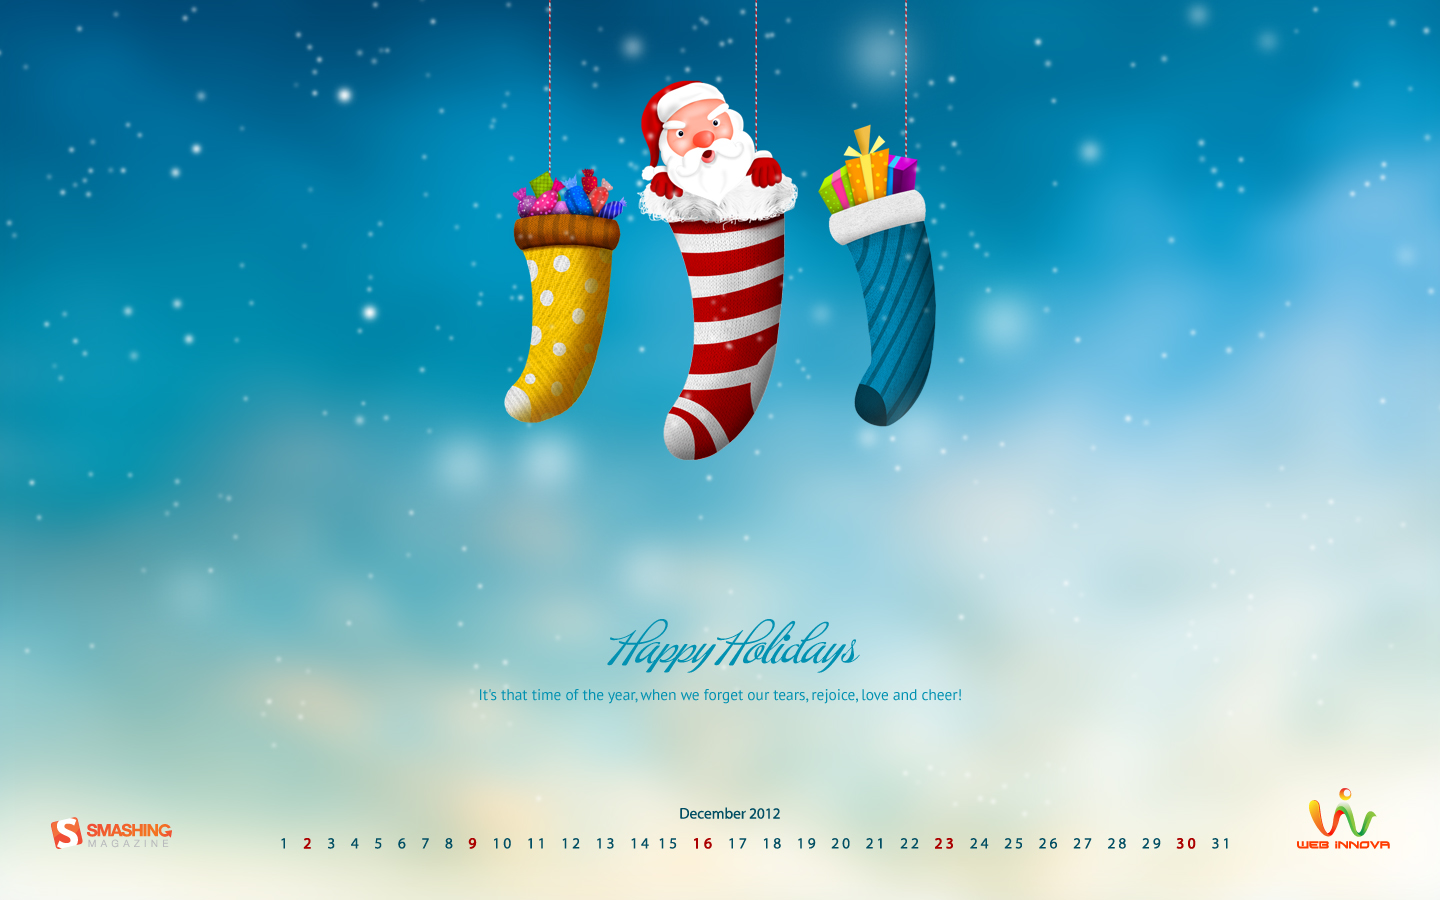 Years Christmas theme Calendar Wallpaper 32049